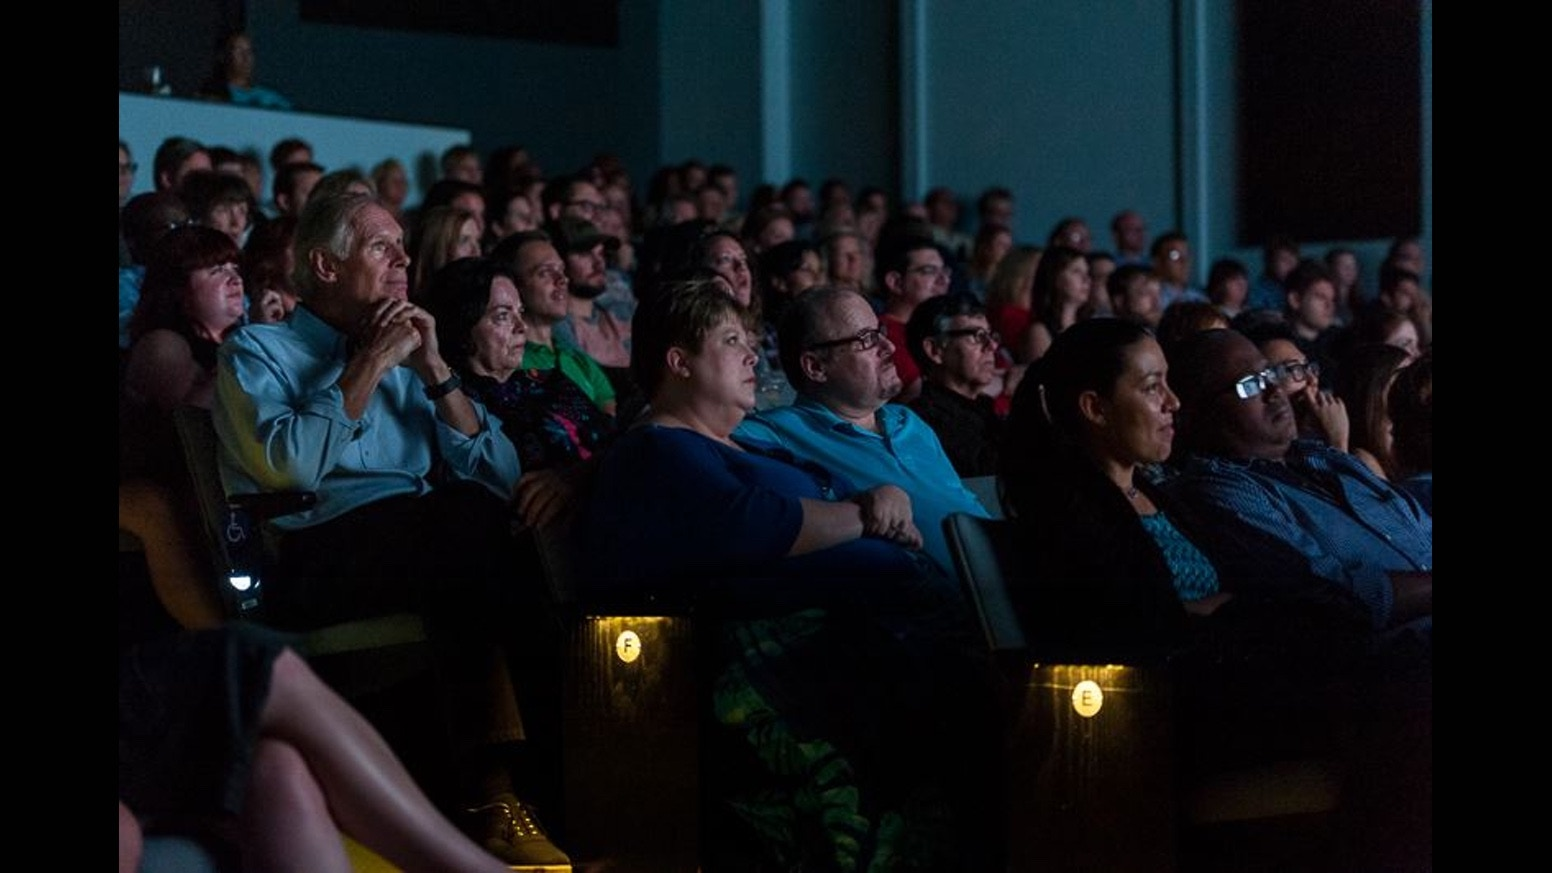 4deb14dbc7d Help Us Bring Filmmakers to the 2017 Indy Film Fest! by Indy Film ...